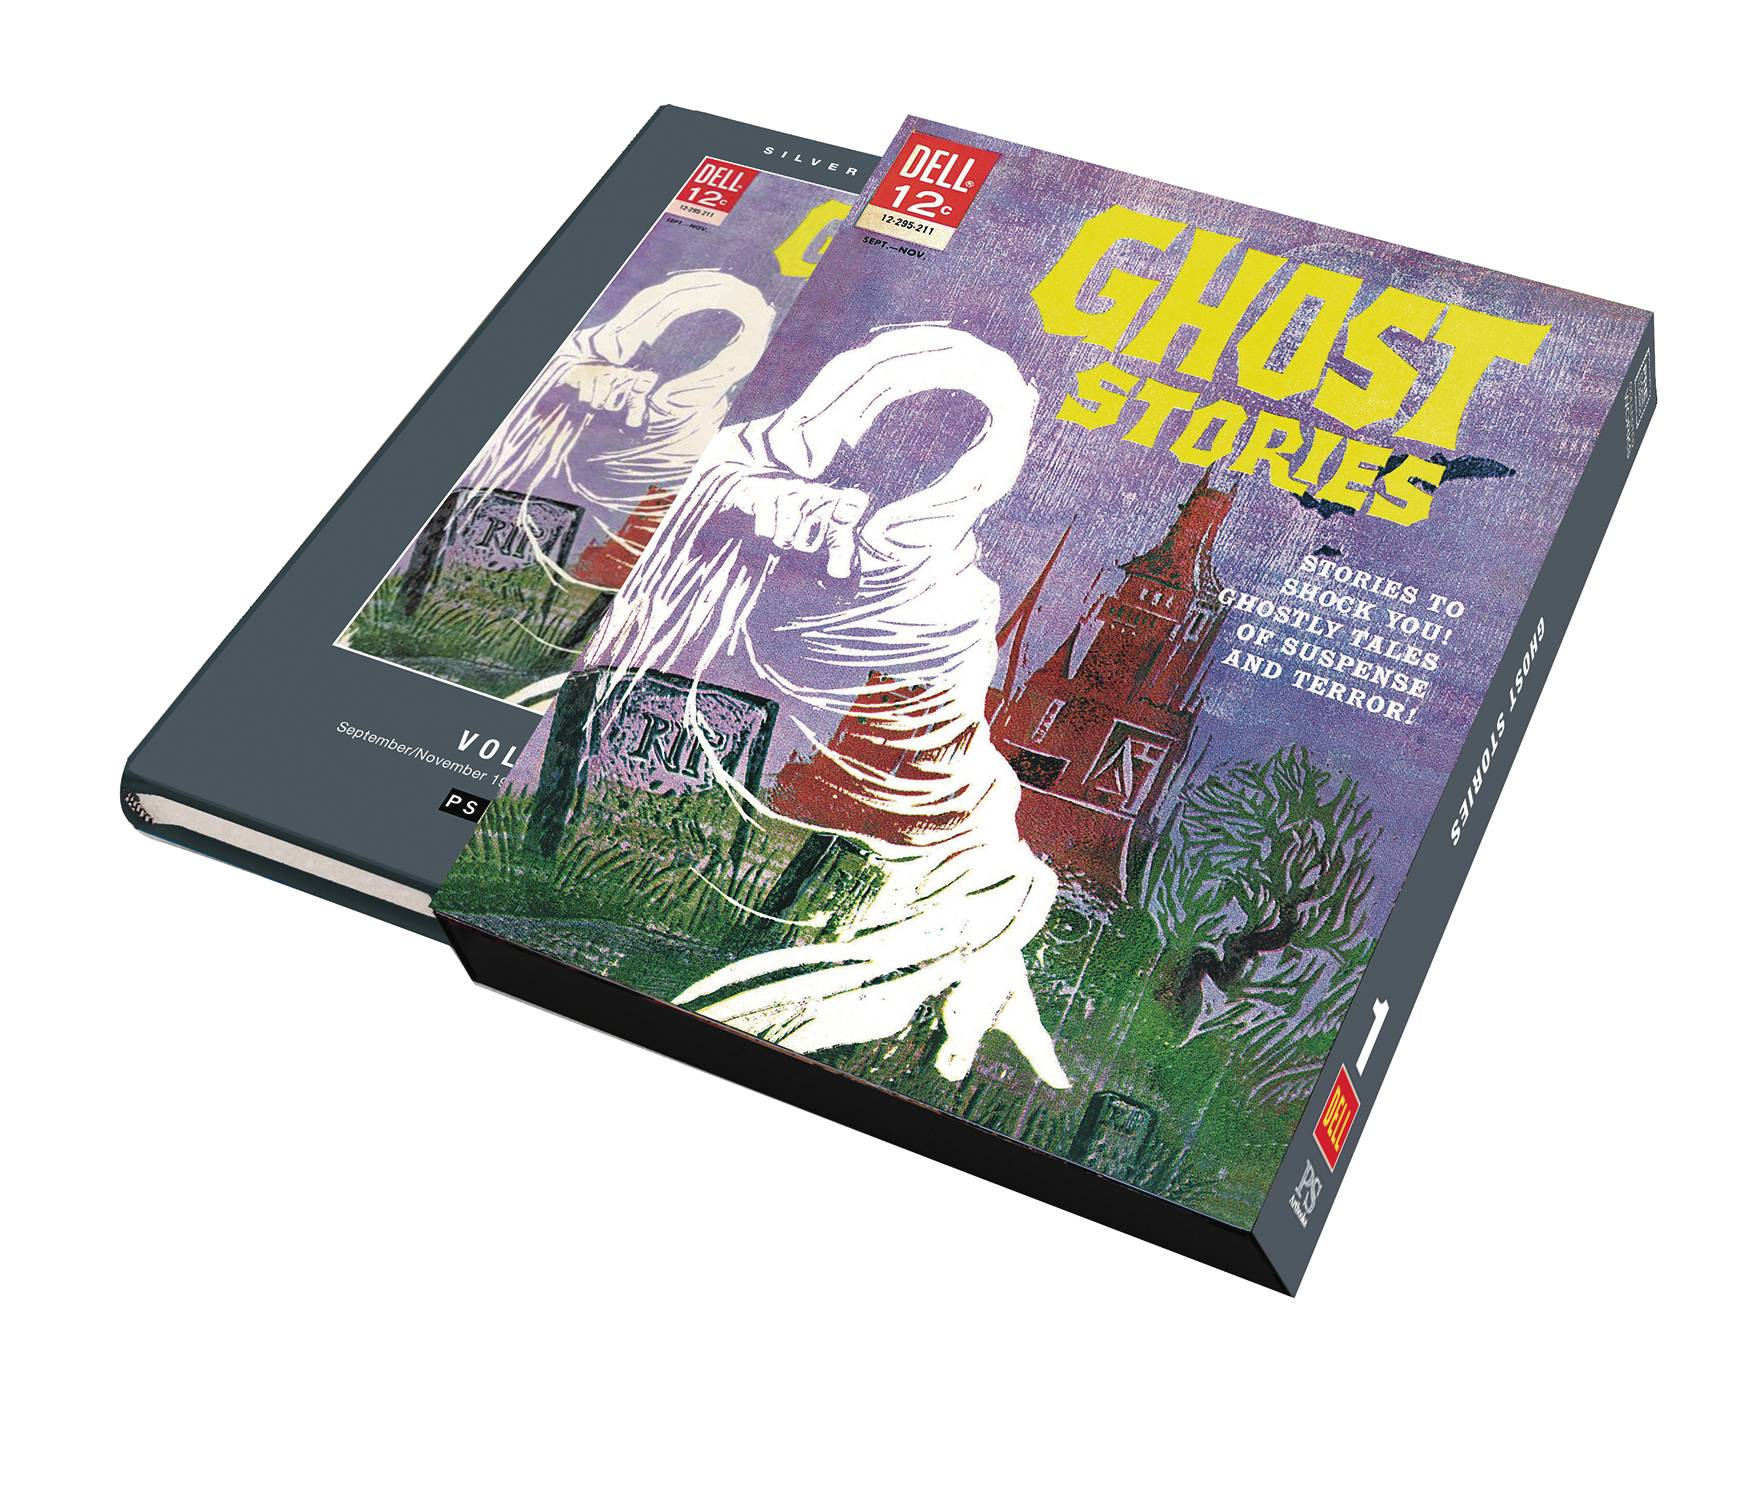 SILVER AGE CLASSICS GHOST STORIES HC 01 SLIPCASE ED